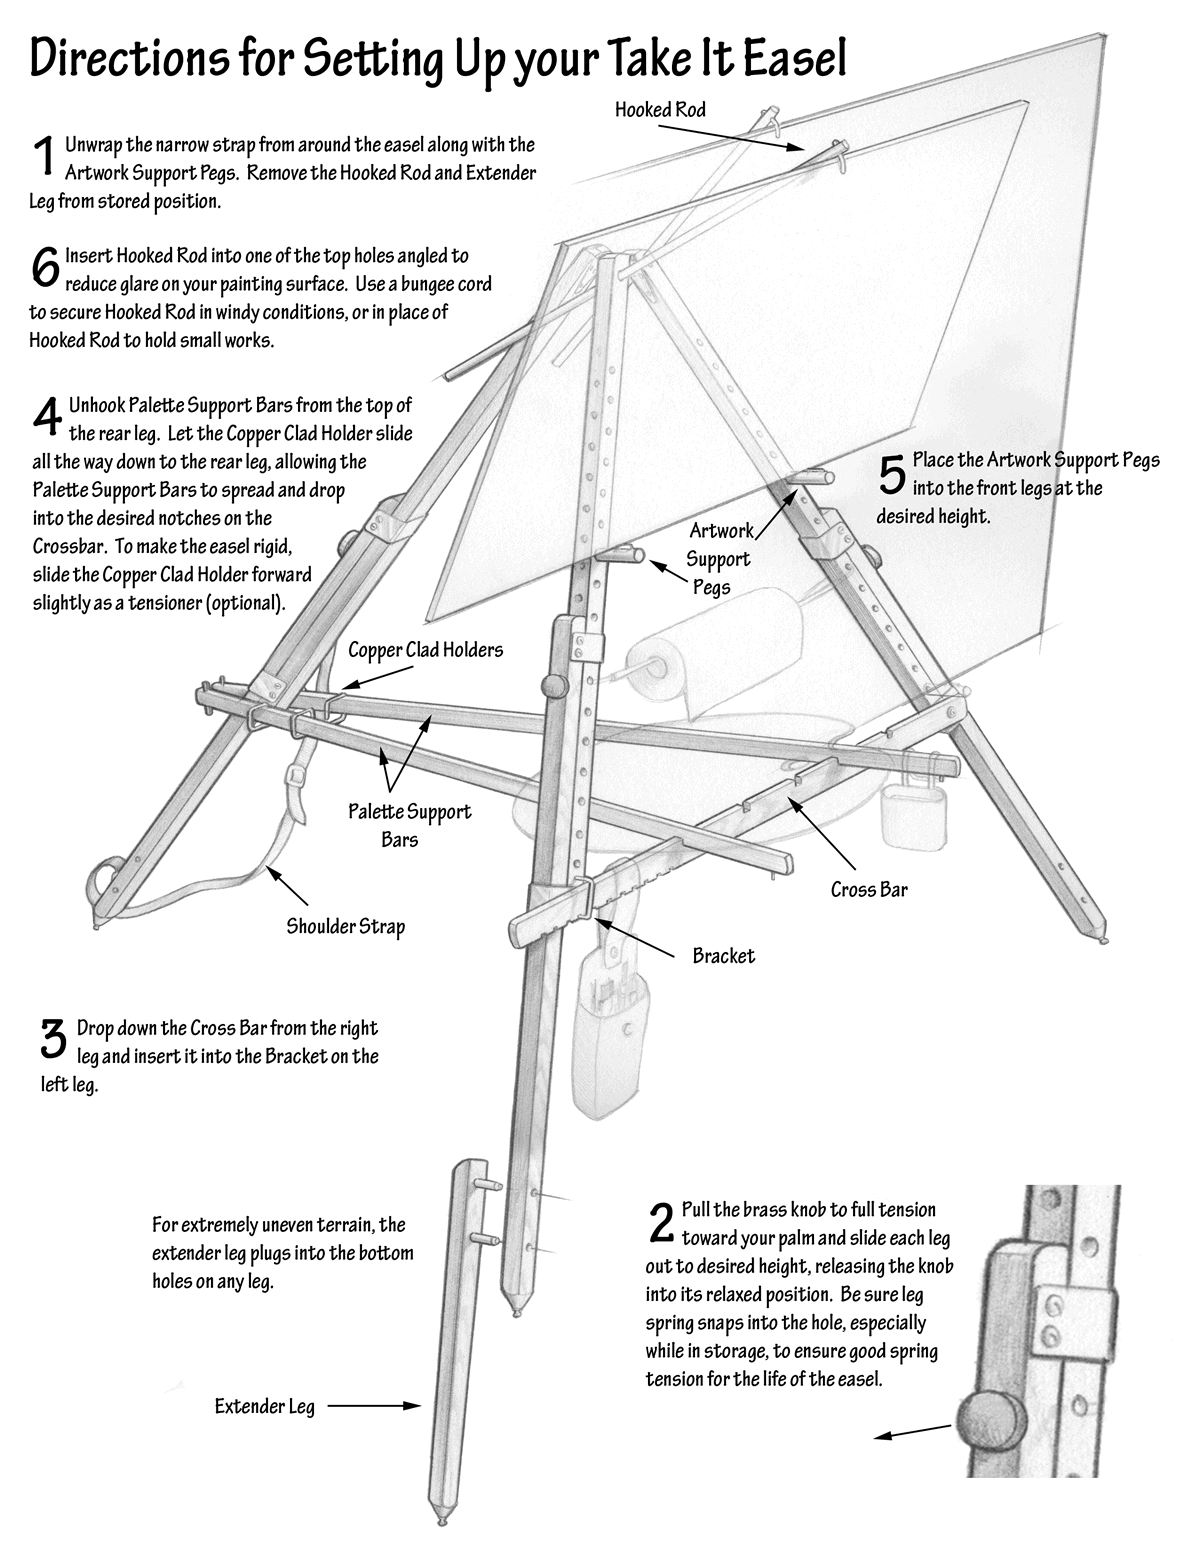 Take It Easel Setup Instructions